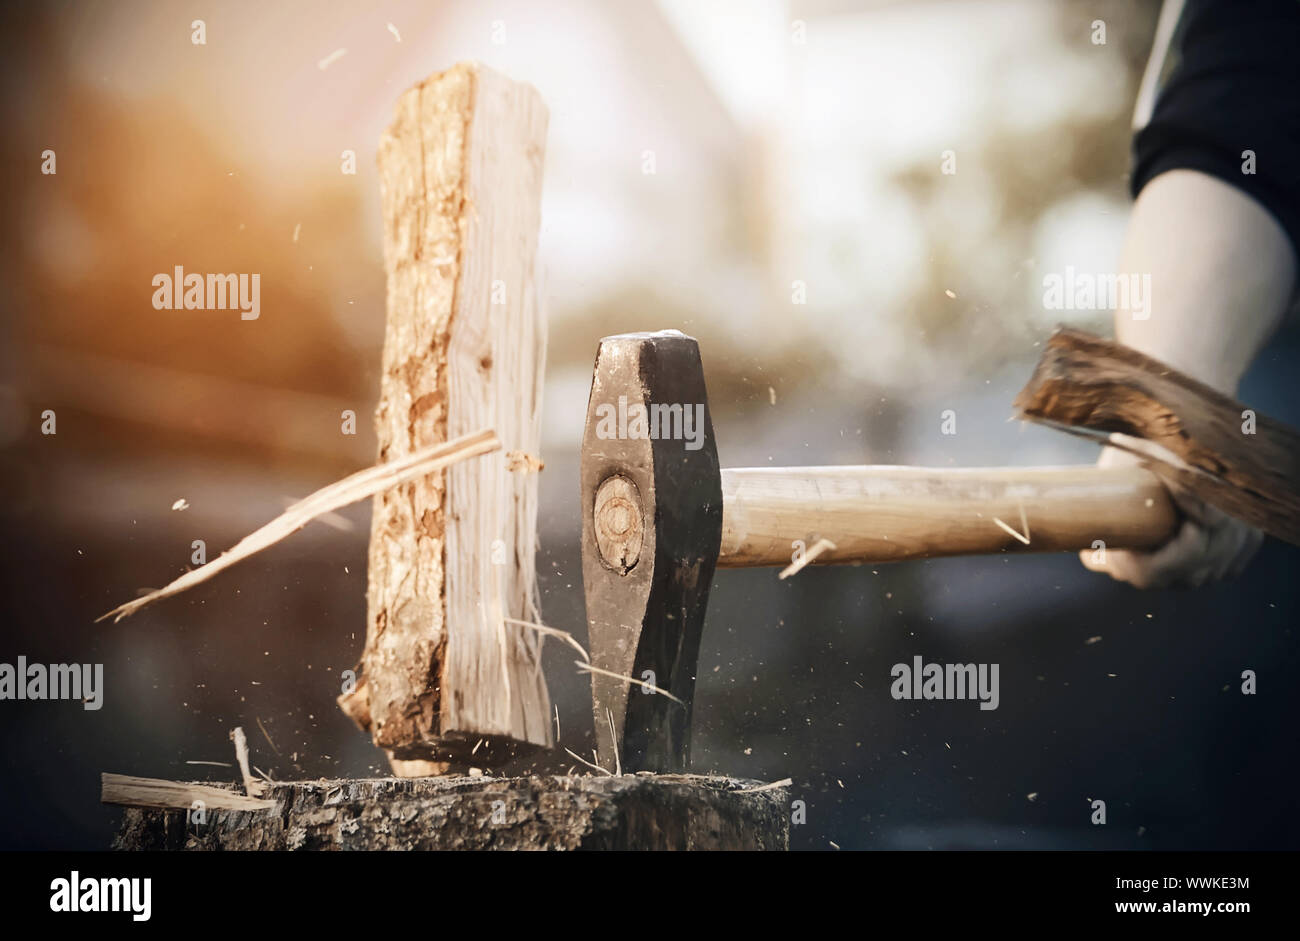 A powerful sharp axe cuts a log into pieces, from which small and large splinters fly in all directions. Stock Photo